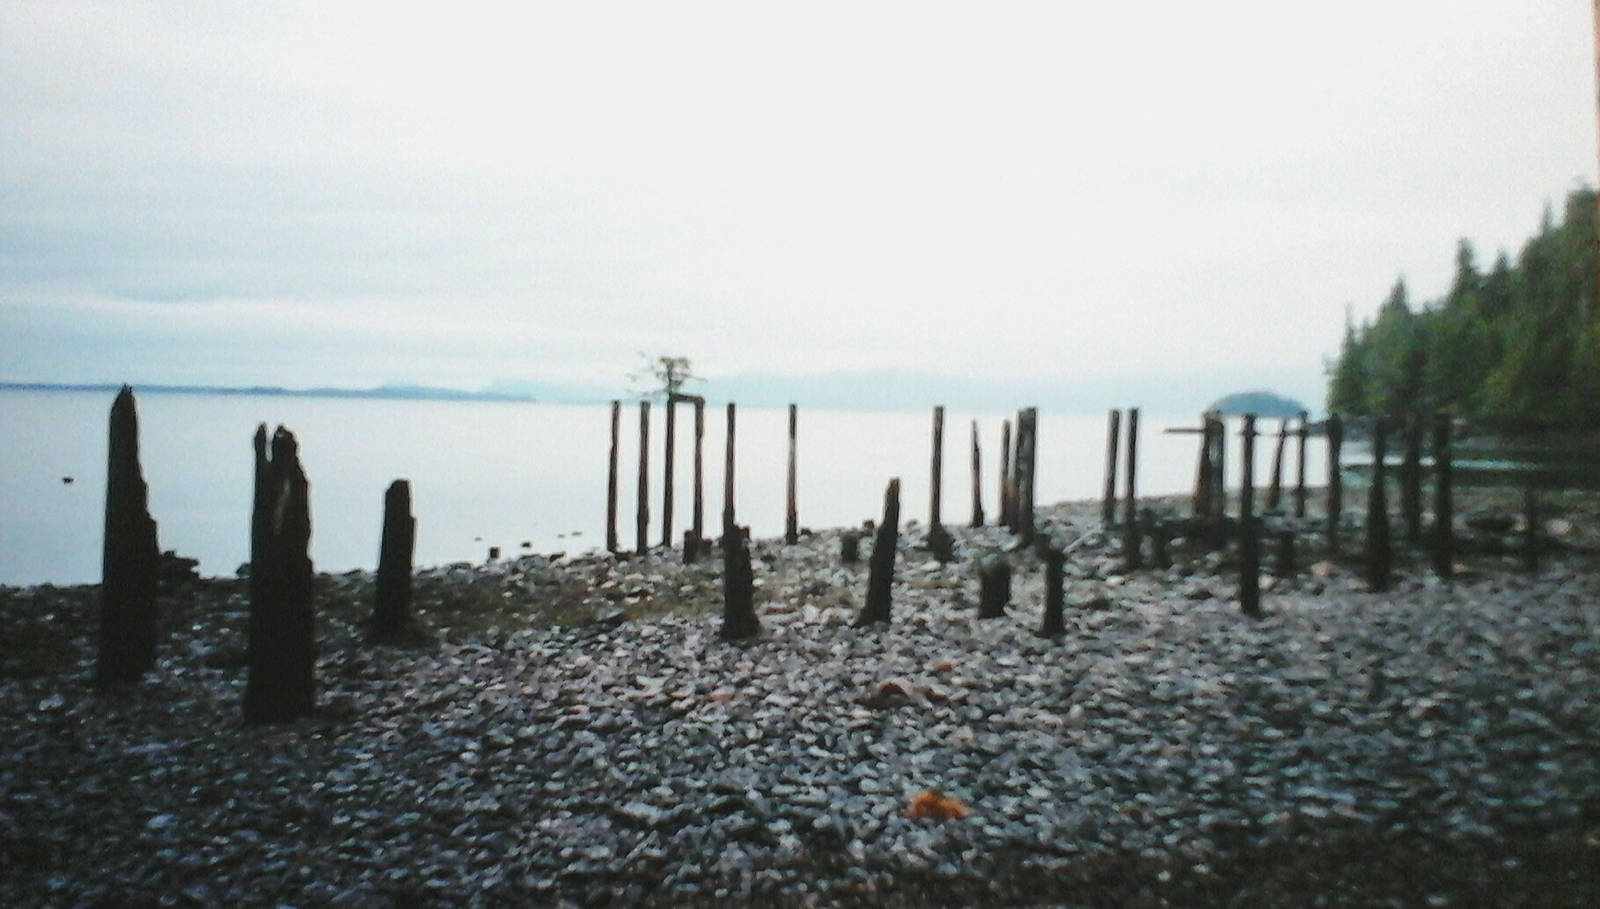 Lonely, burned pilings standing sentinel over the ruinsof the Union Bay cannery, and the beautiful view. Photo by Tara Neilson.